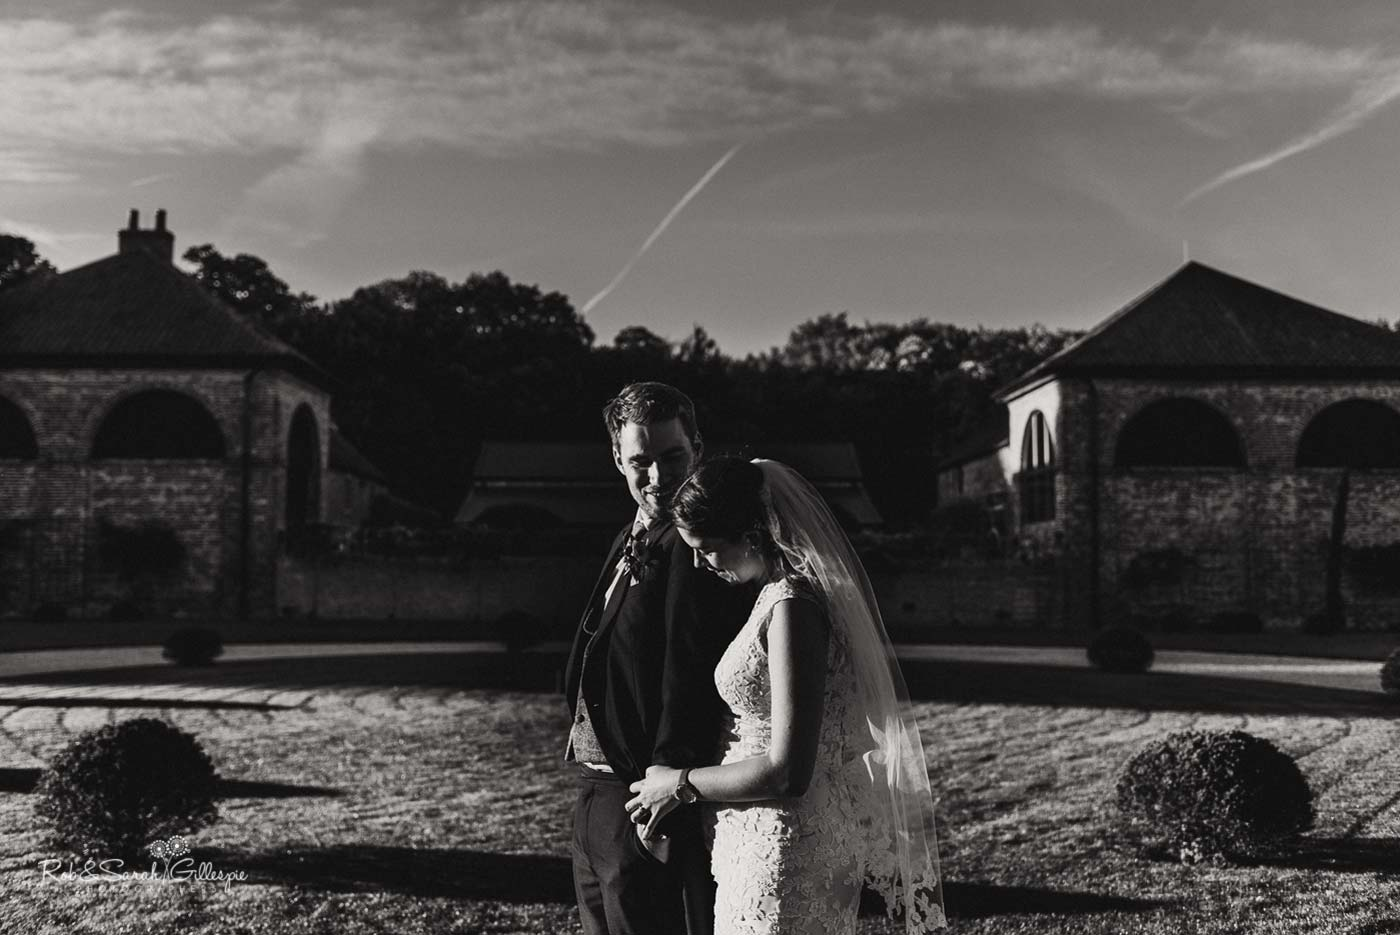 Bride and groom at Hazel Gap Barn wedding